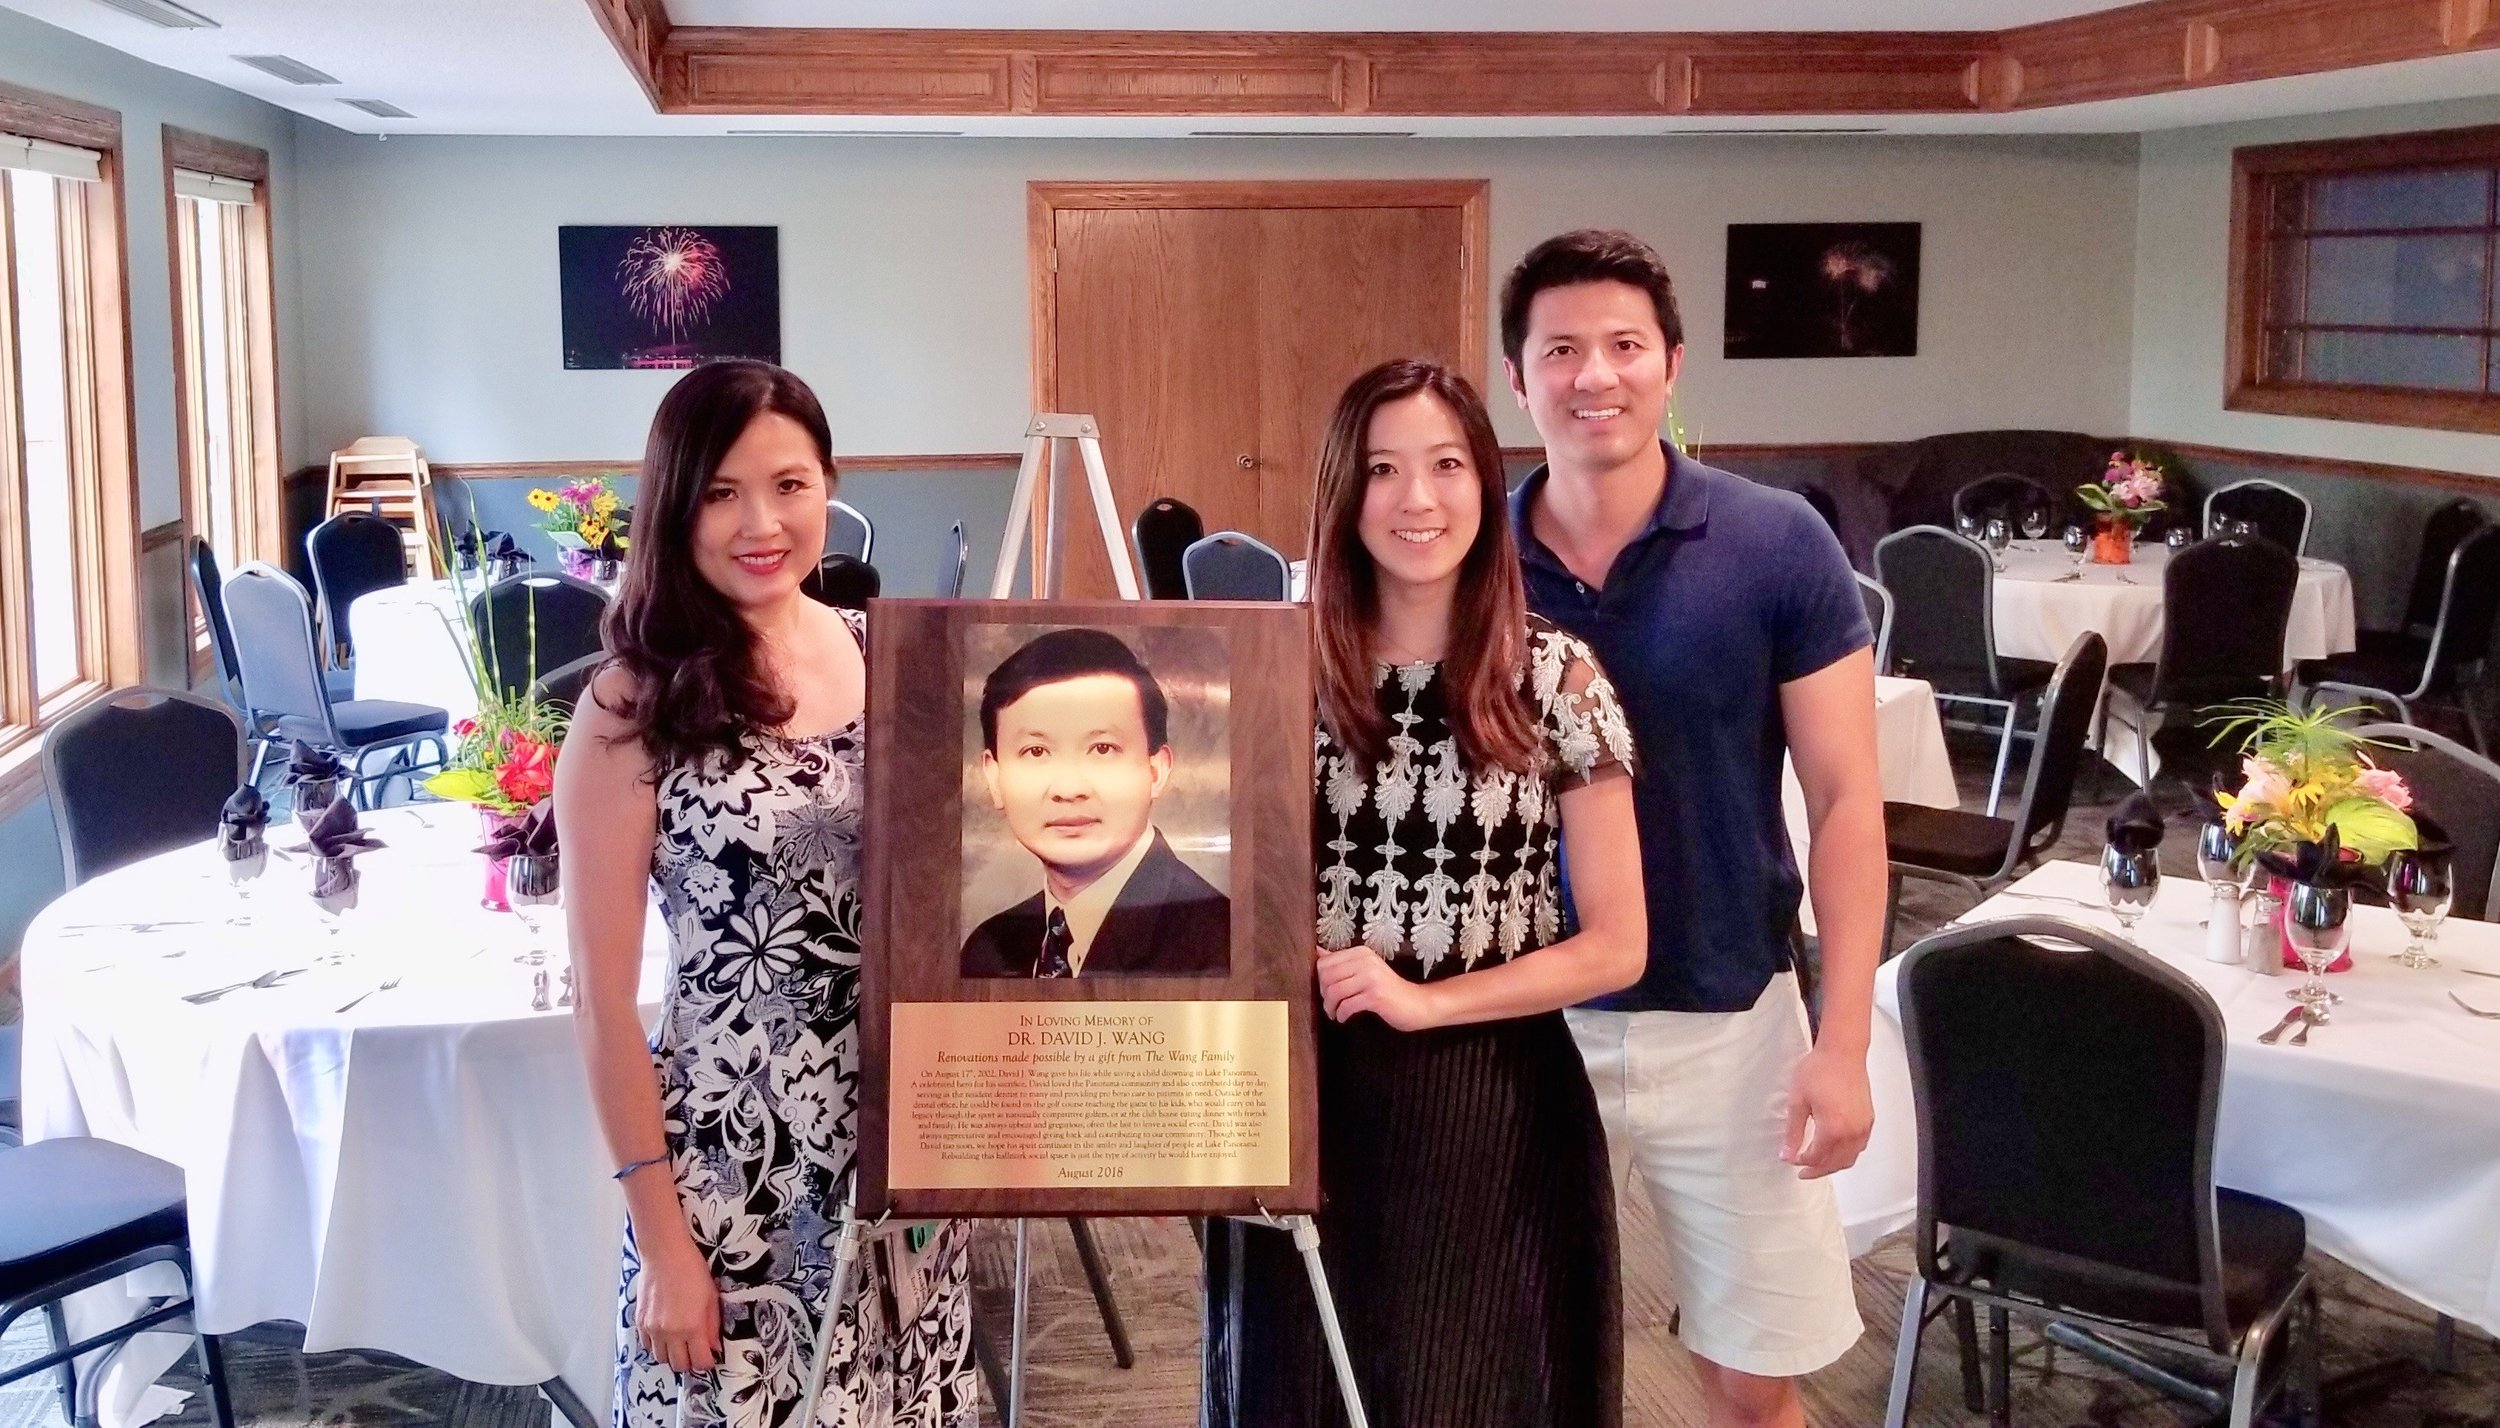 Cassie, Tony and Grace Wang are shown in the LPN dining room with a plaque honoring Dr. David Wang, who passed away in 2002. The Wang family made a donation to Friends of Lake Panorama in his memory, with some of the money used to update the dining room. The updates include new chairs, artwork, tables and tabletop accessories.